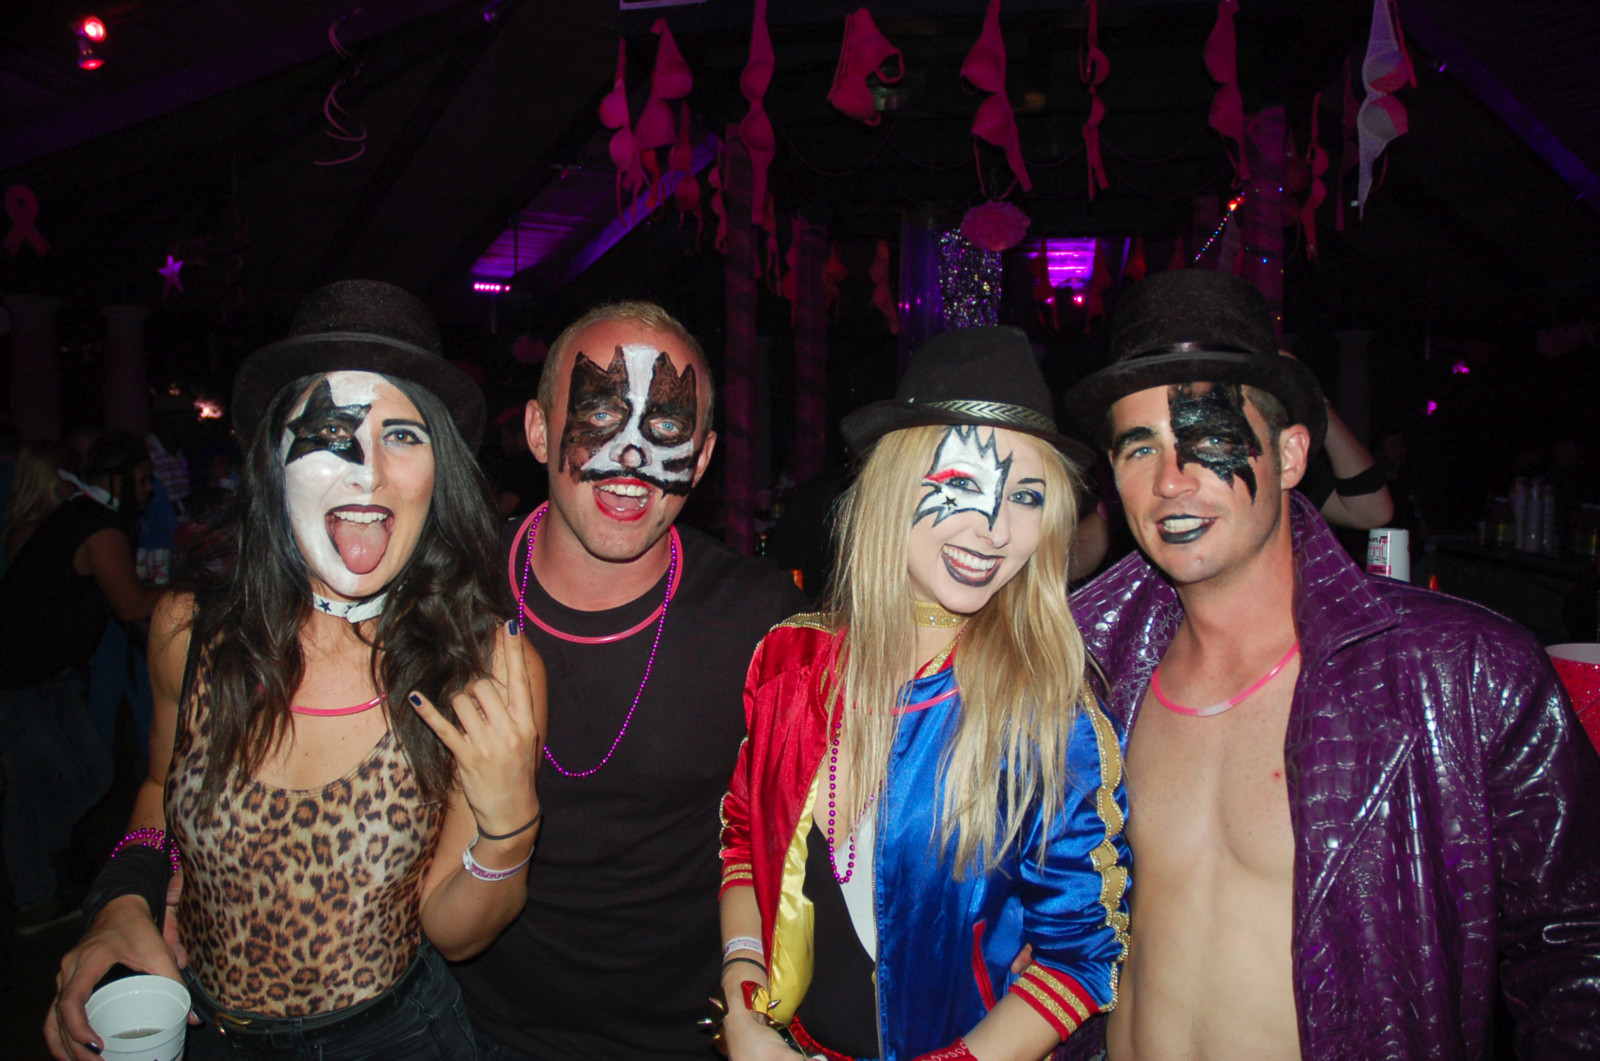 Rock on: Scenes from National Marine Suppliers annual party